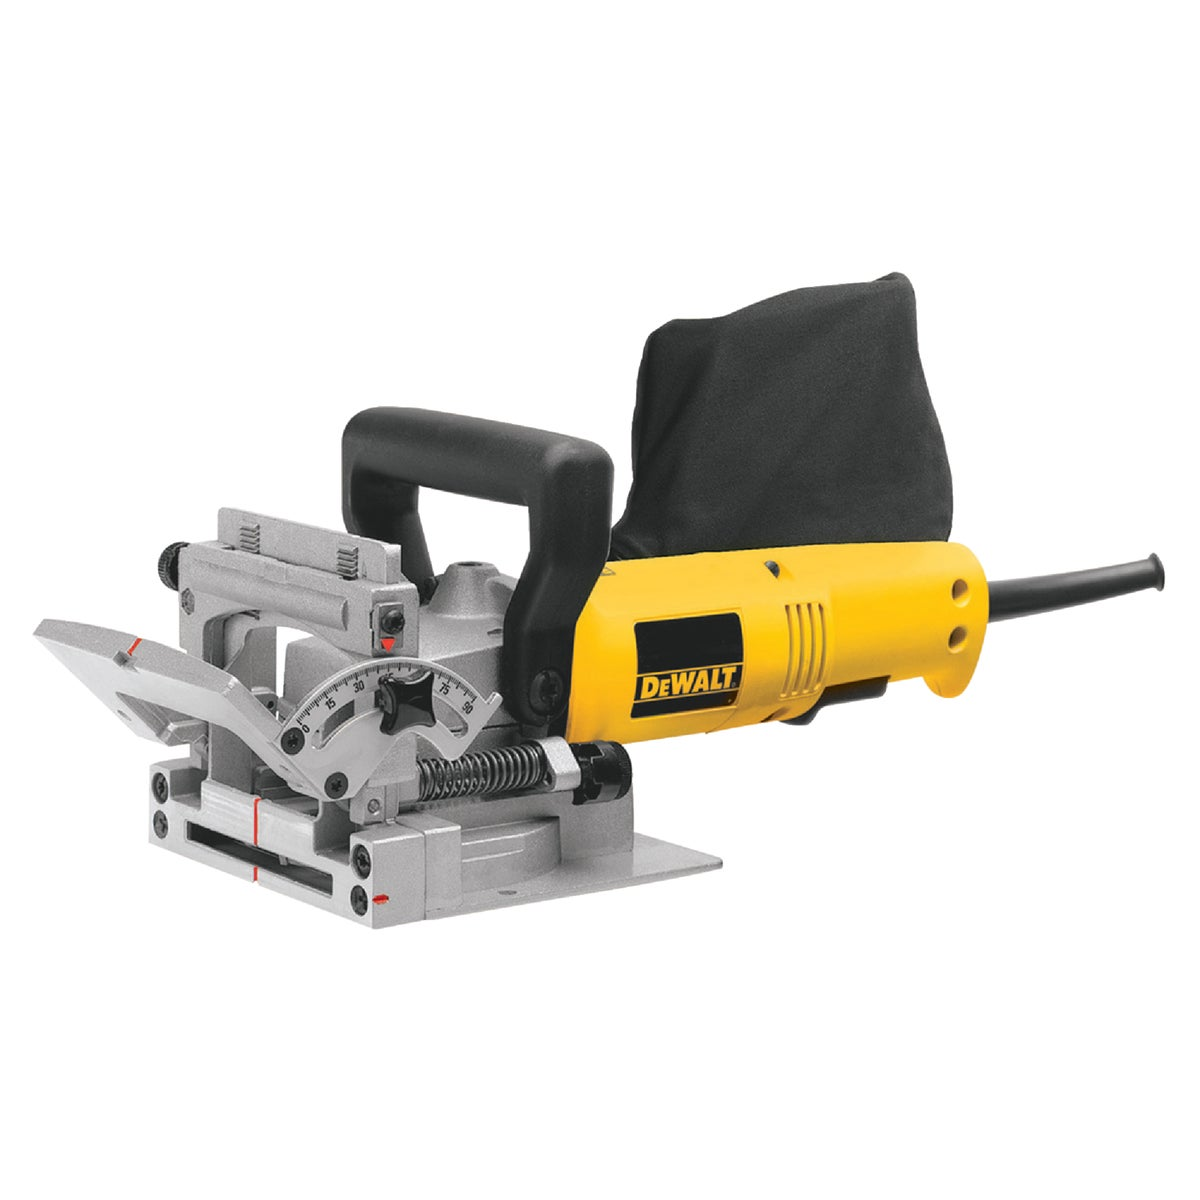 6.5A PLATE JOINER